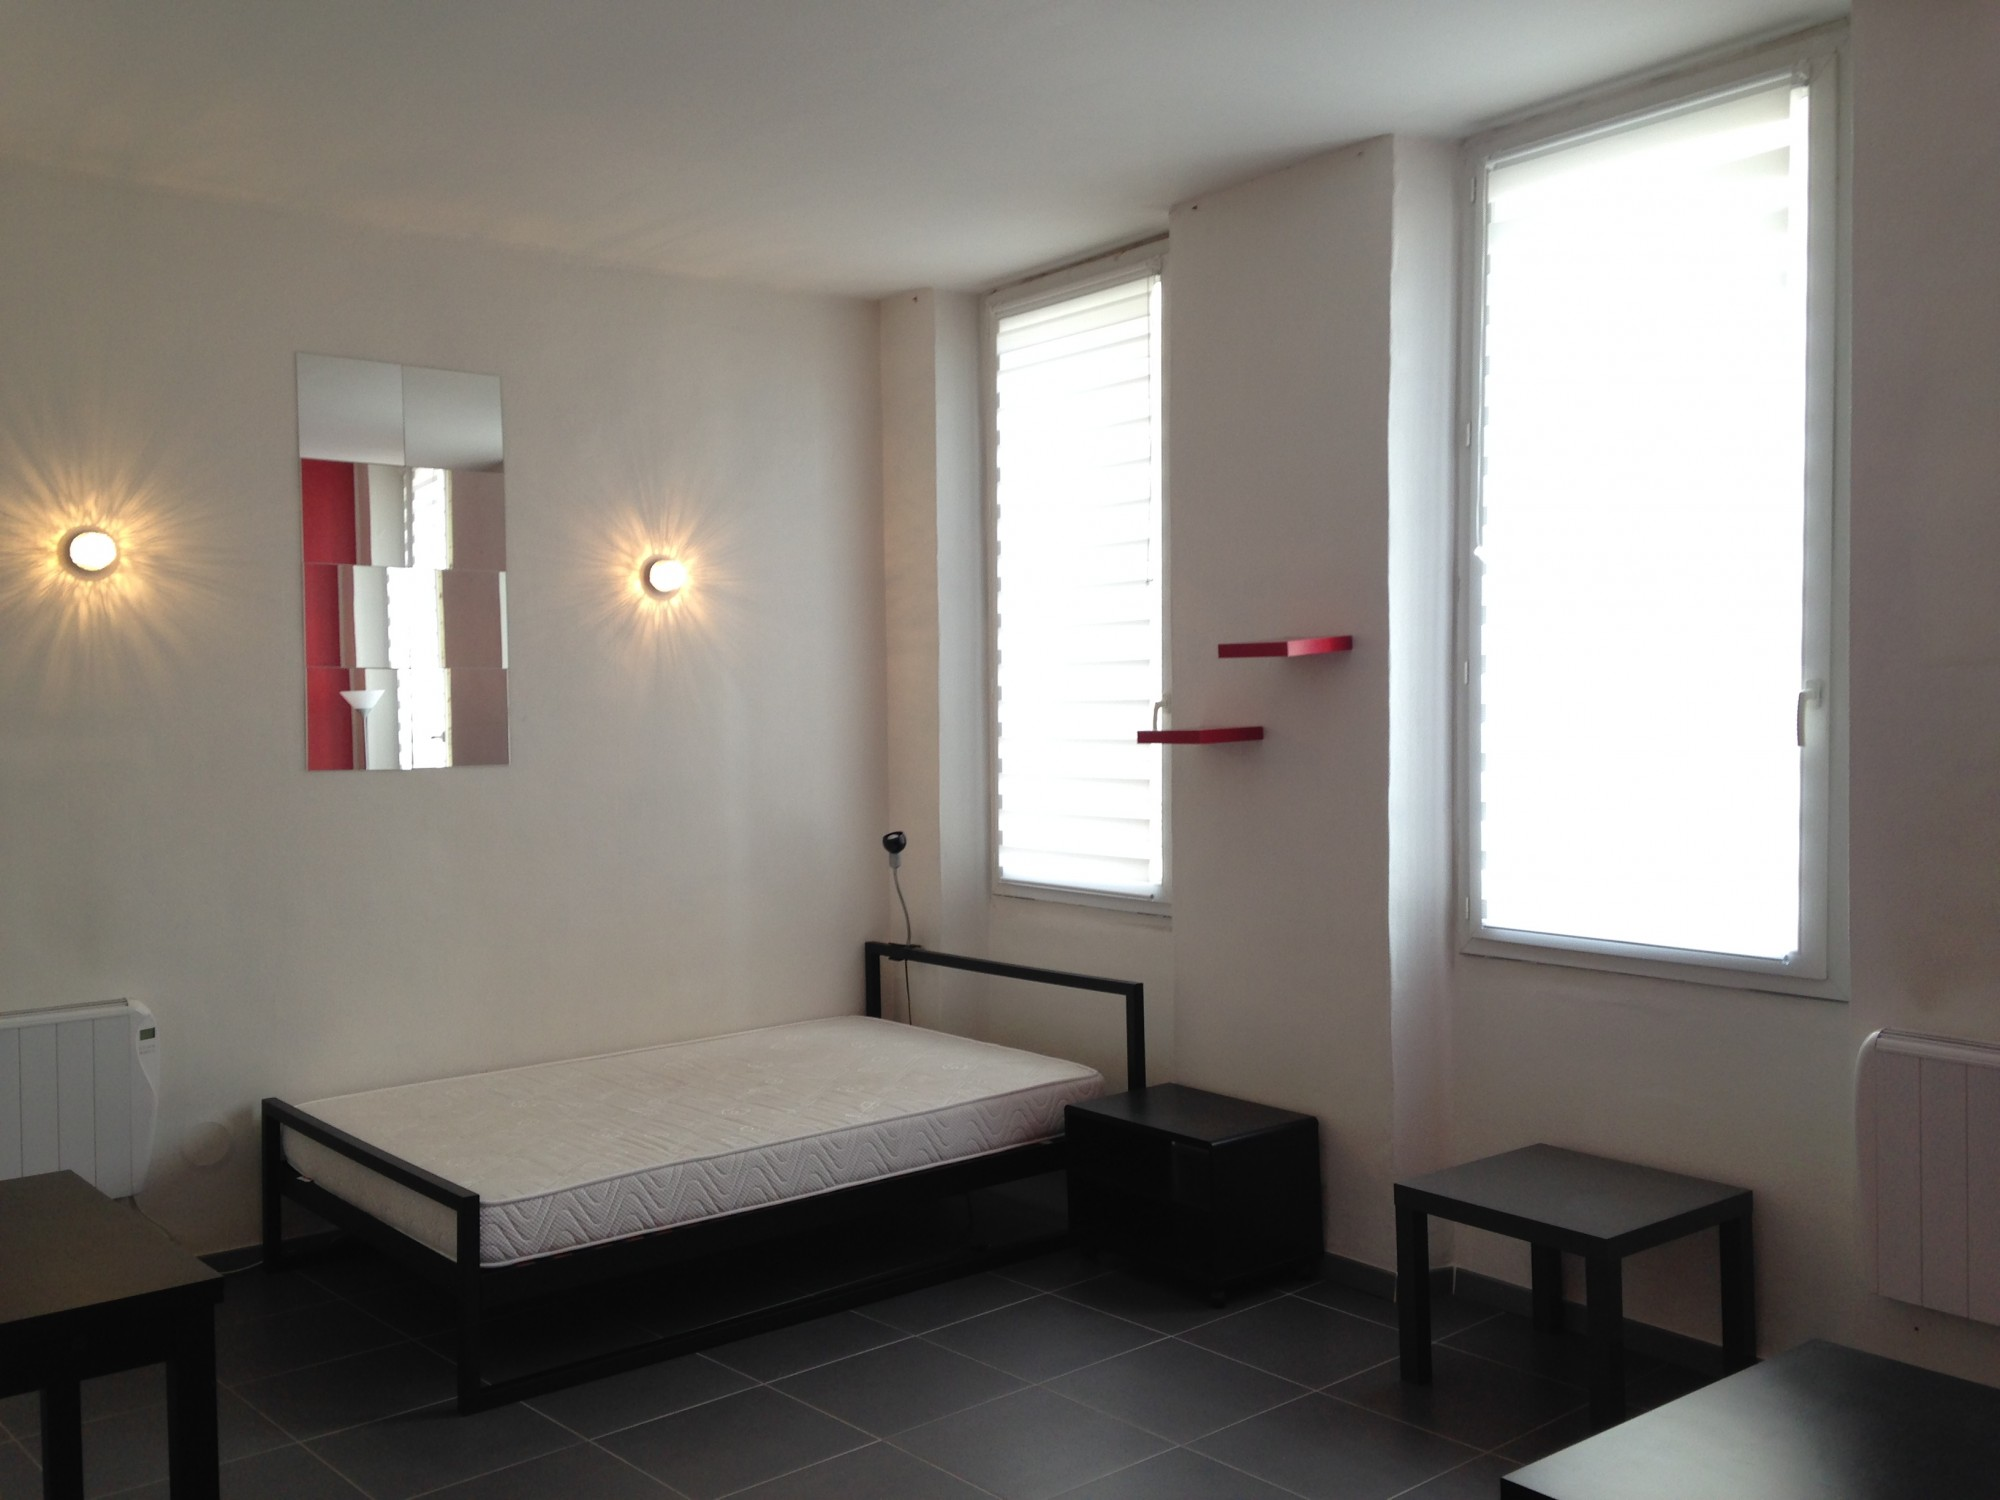 Locations appartement meubl t1 f1 13006 rue auguste for Appartement meuble location